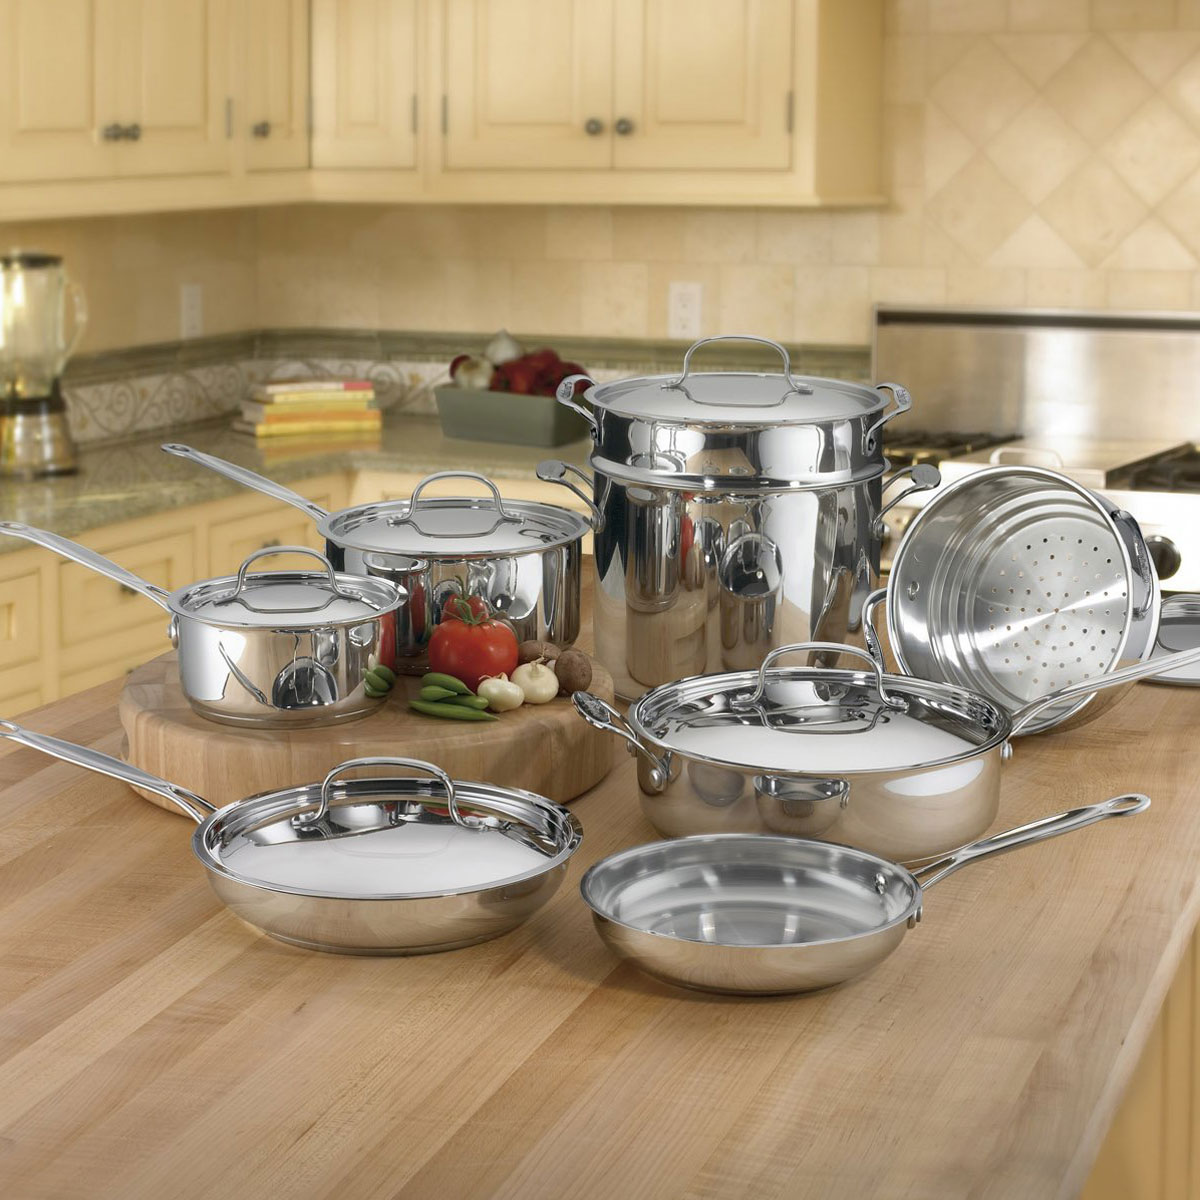 Cuisinart Chef's Classic Stainless Steel 14-Piece Cookware Set